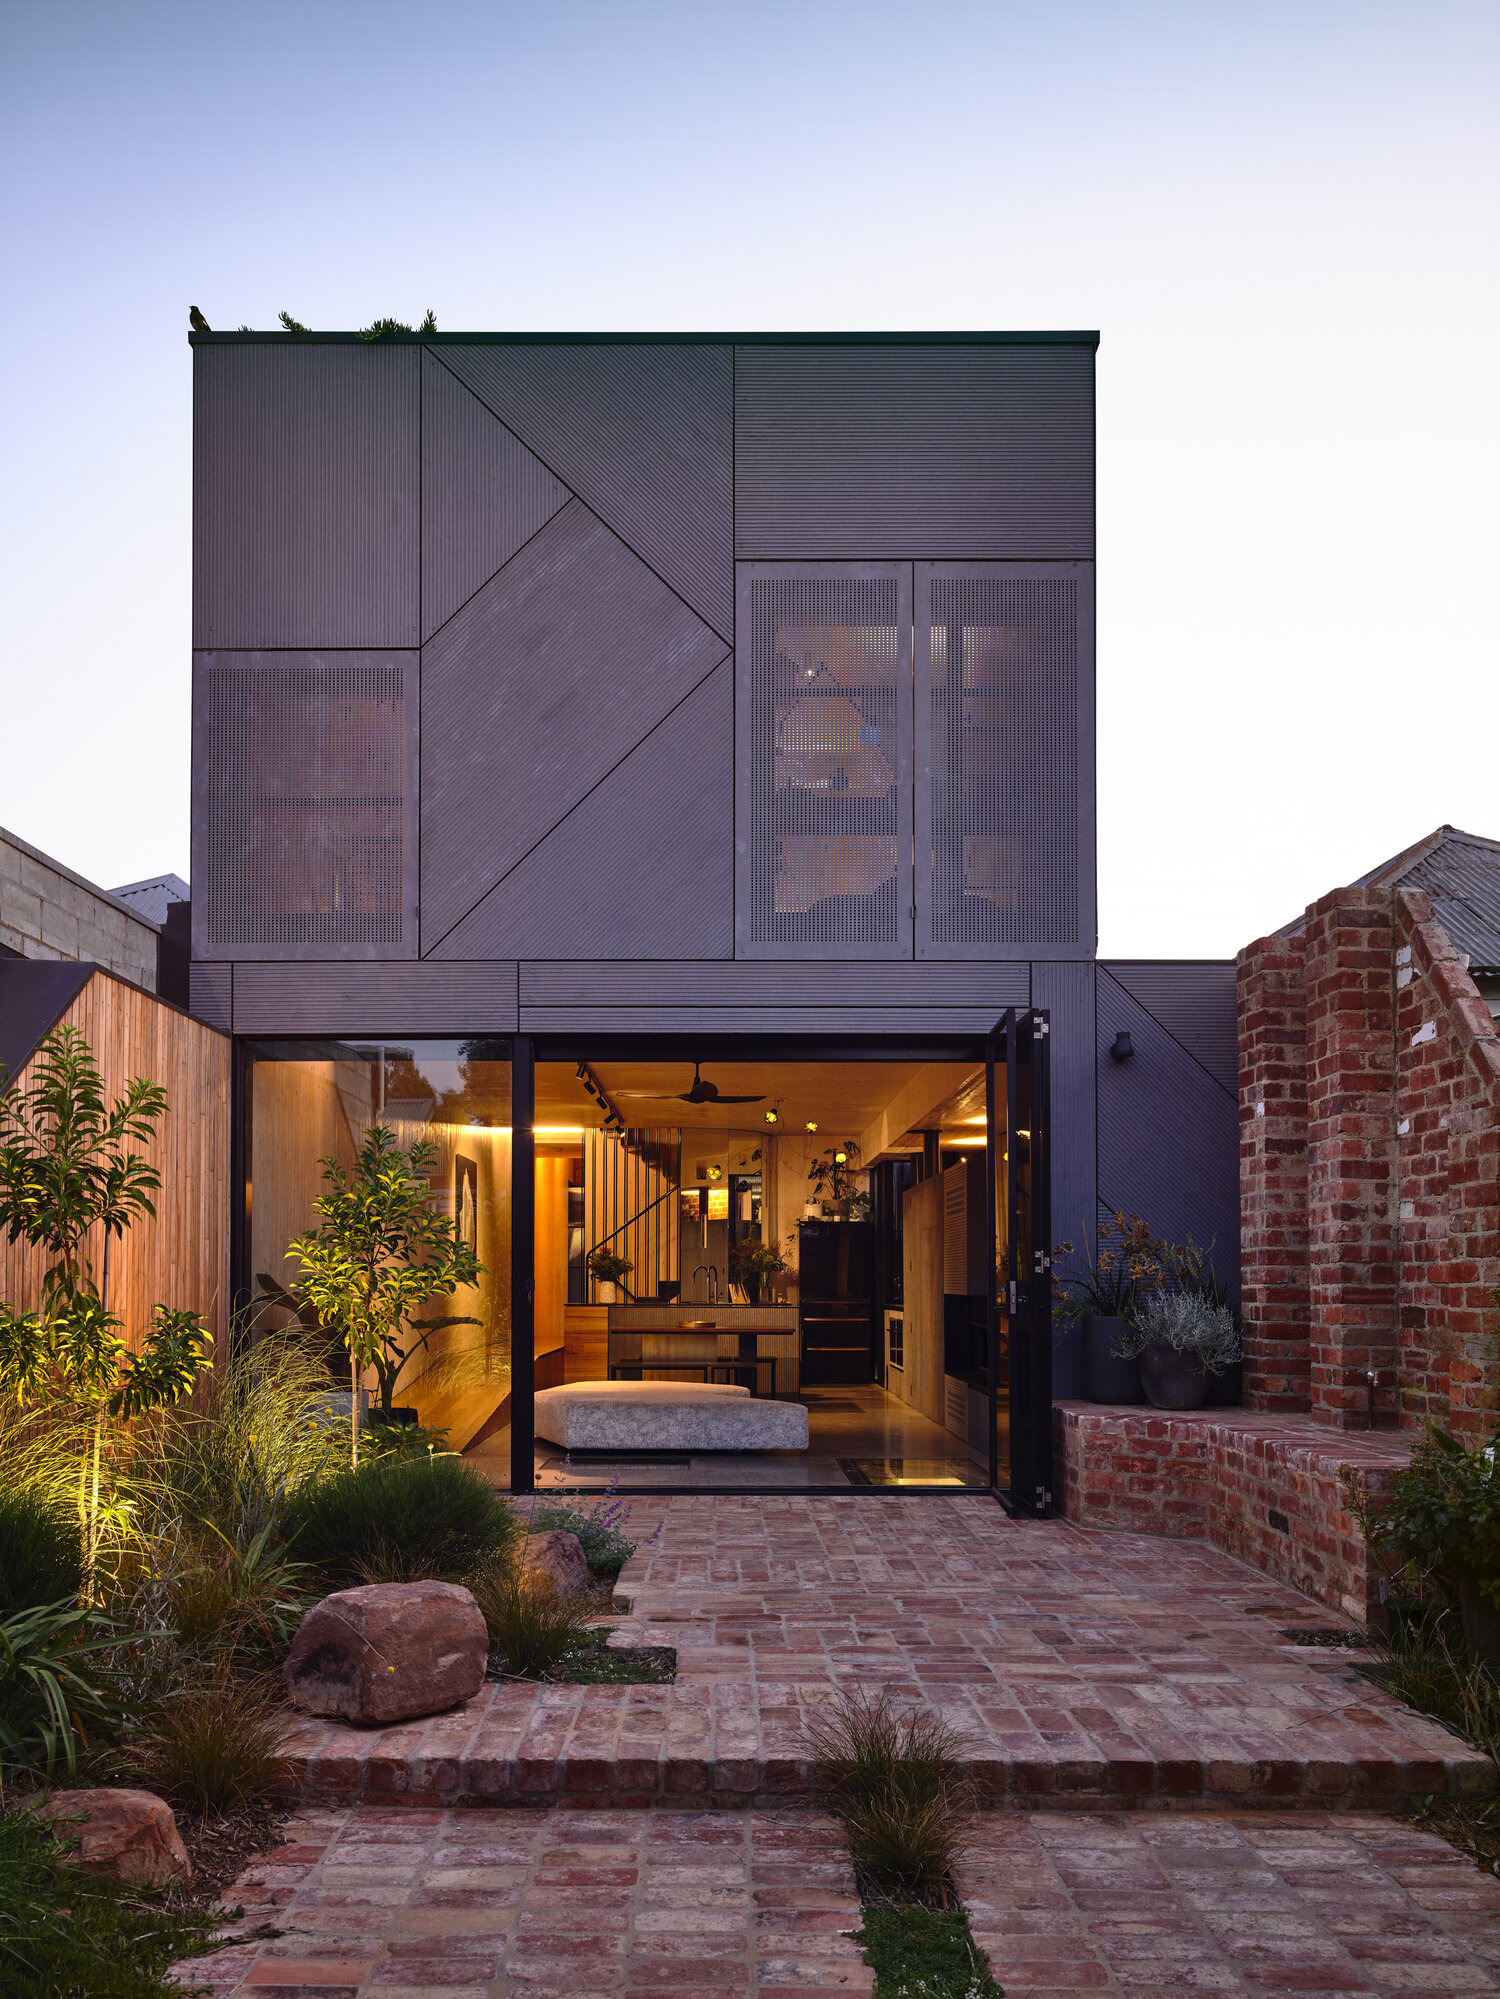 How to Build An Affordable Modern House Unique Austin Maynard Architects